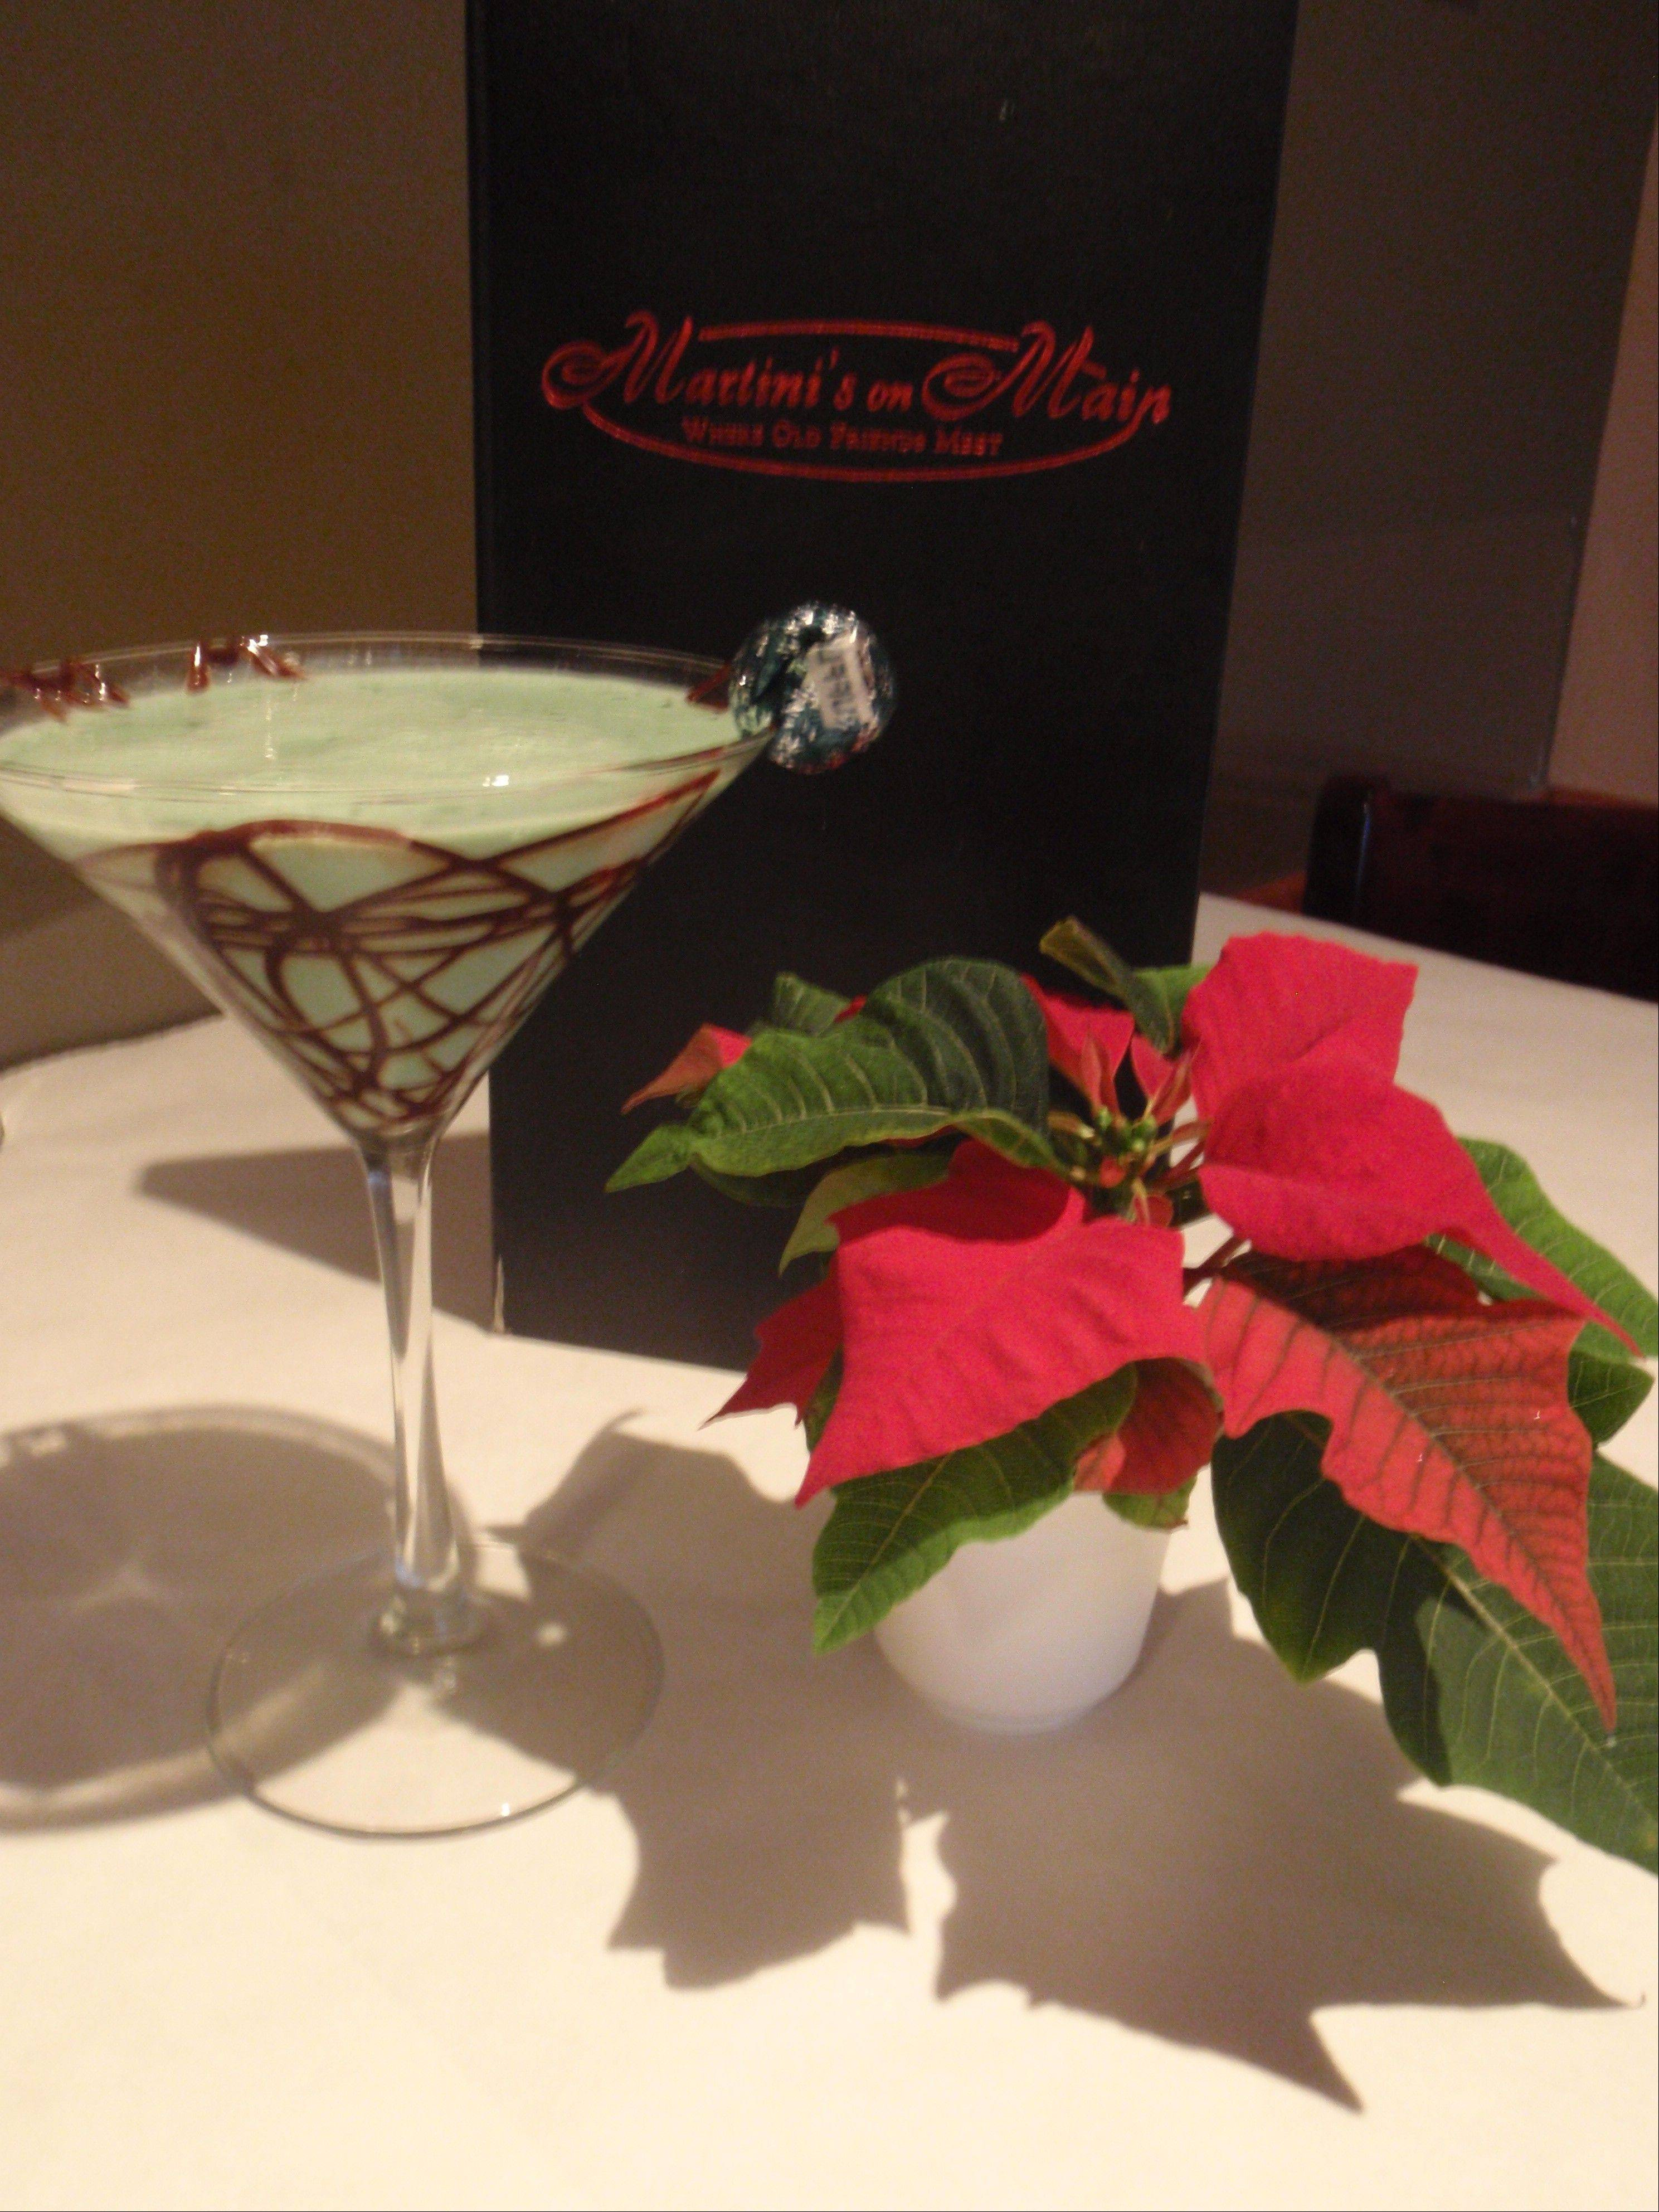 The Candy Cane martini at Martinis on Main gets its color from the crème de mint.